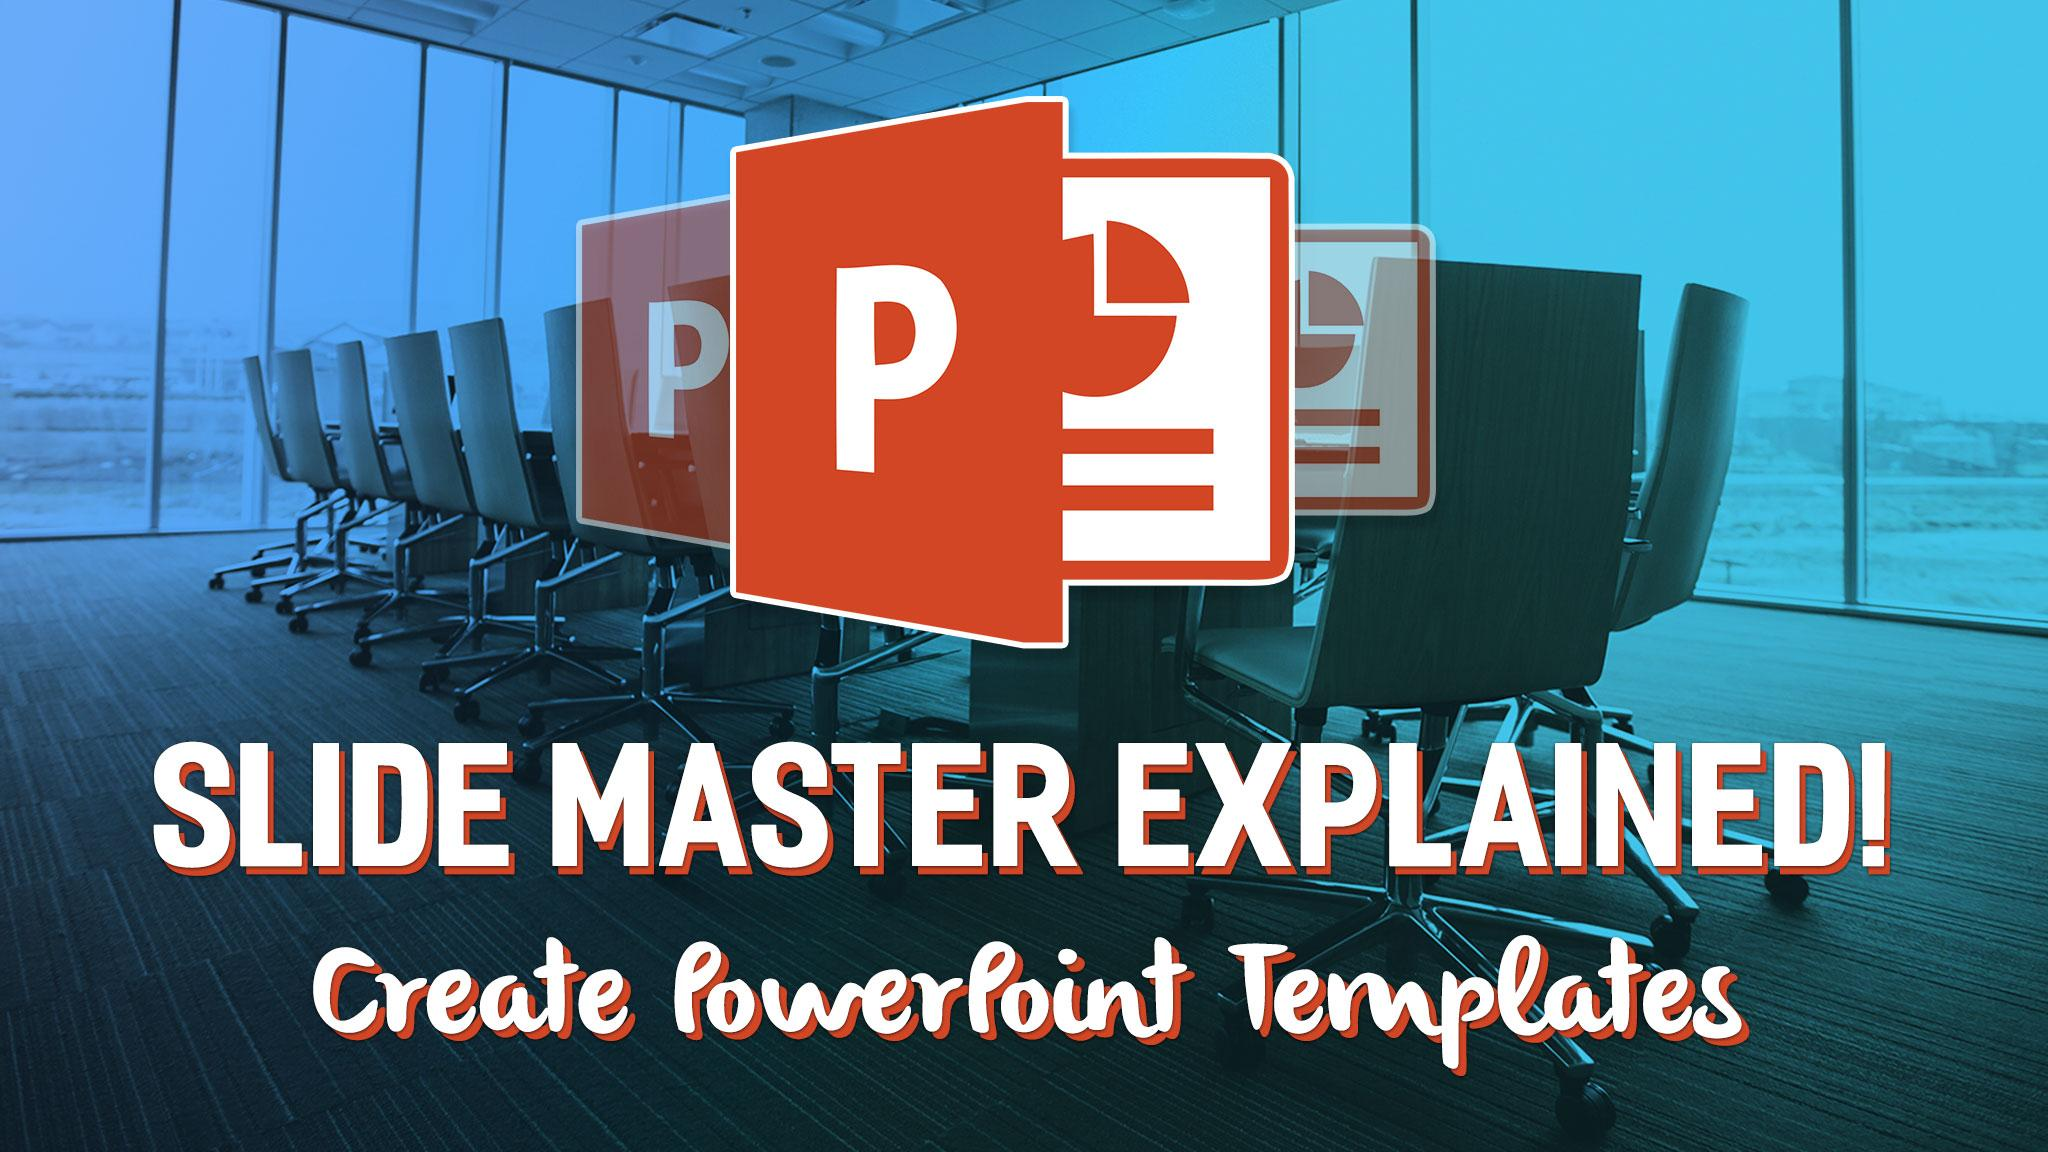 Setting up and creating powerpoint templates slide master explained i cover all the important topics aspects within this class on template and layout creation namely how do we actually create powerpoint toneelgroepblik Images